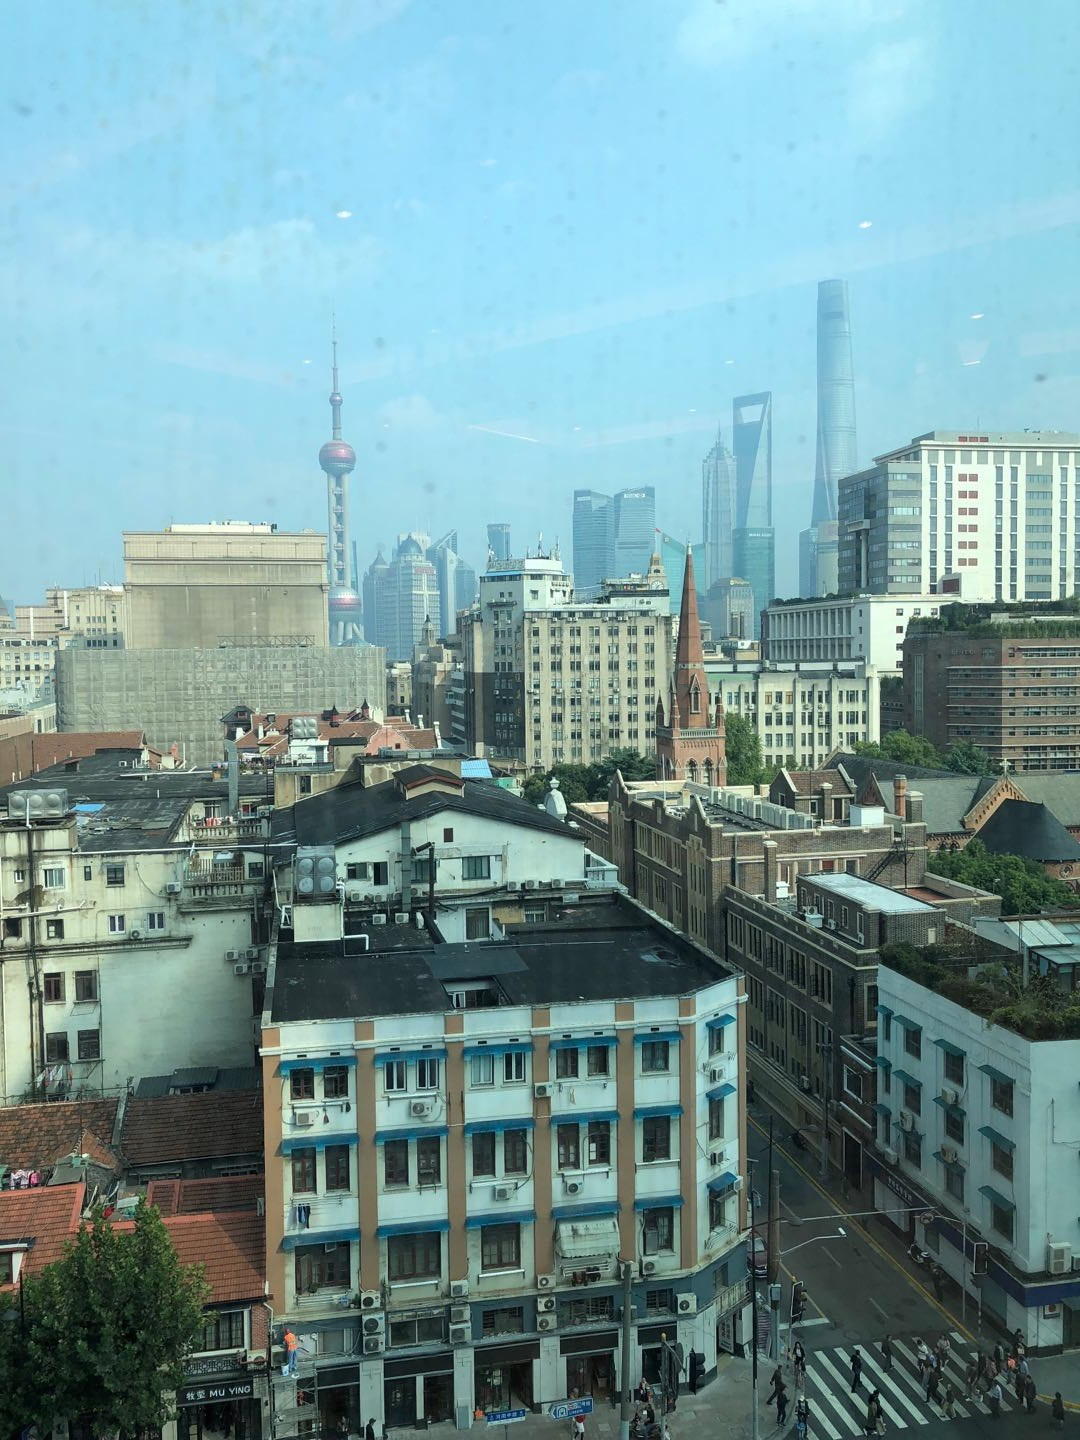 Can you find the Church building in modern Shanghai?